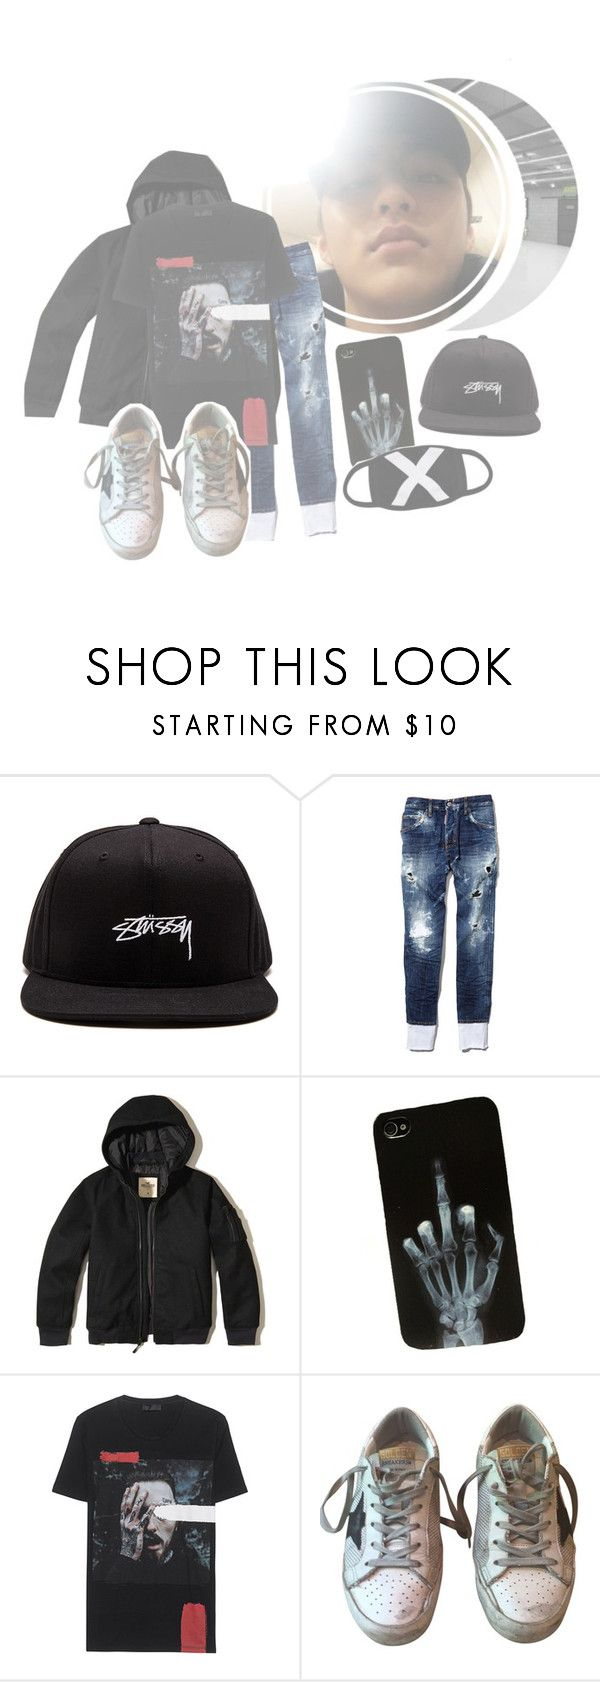 """""""Going out for a walk"""" by tk-official ❤ liked on Polyvore featuring Stussy, Dsquared2, Hollister Co., Golden Goose, men's fashion and menswear"""